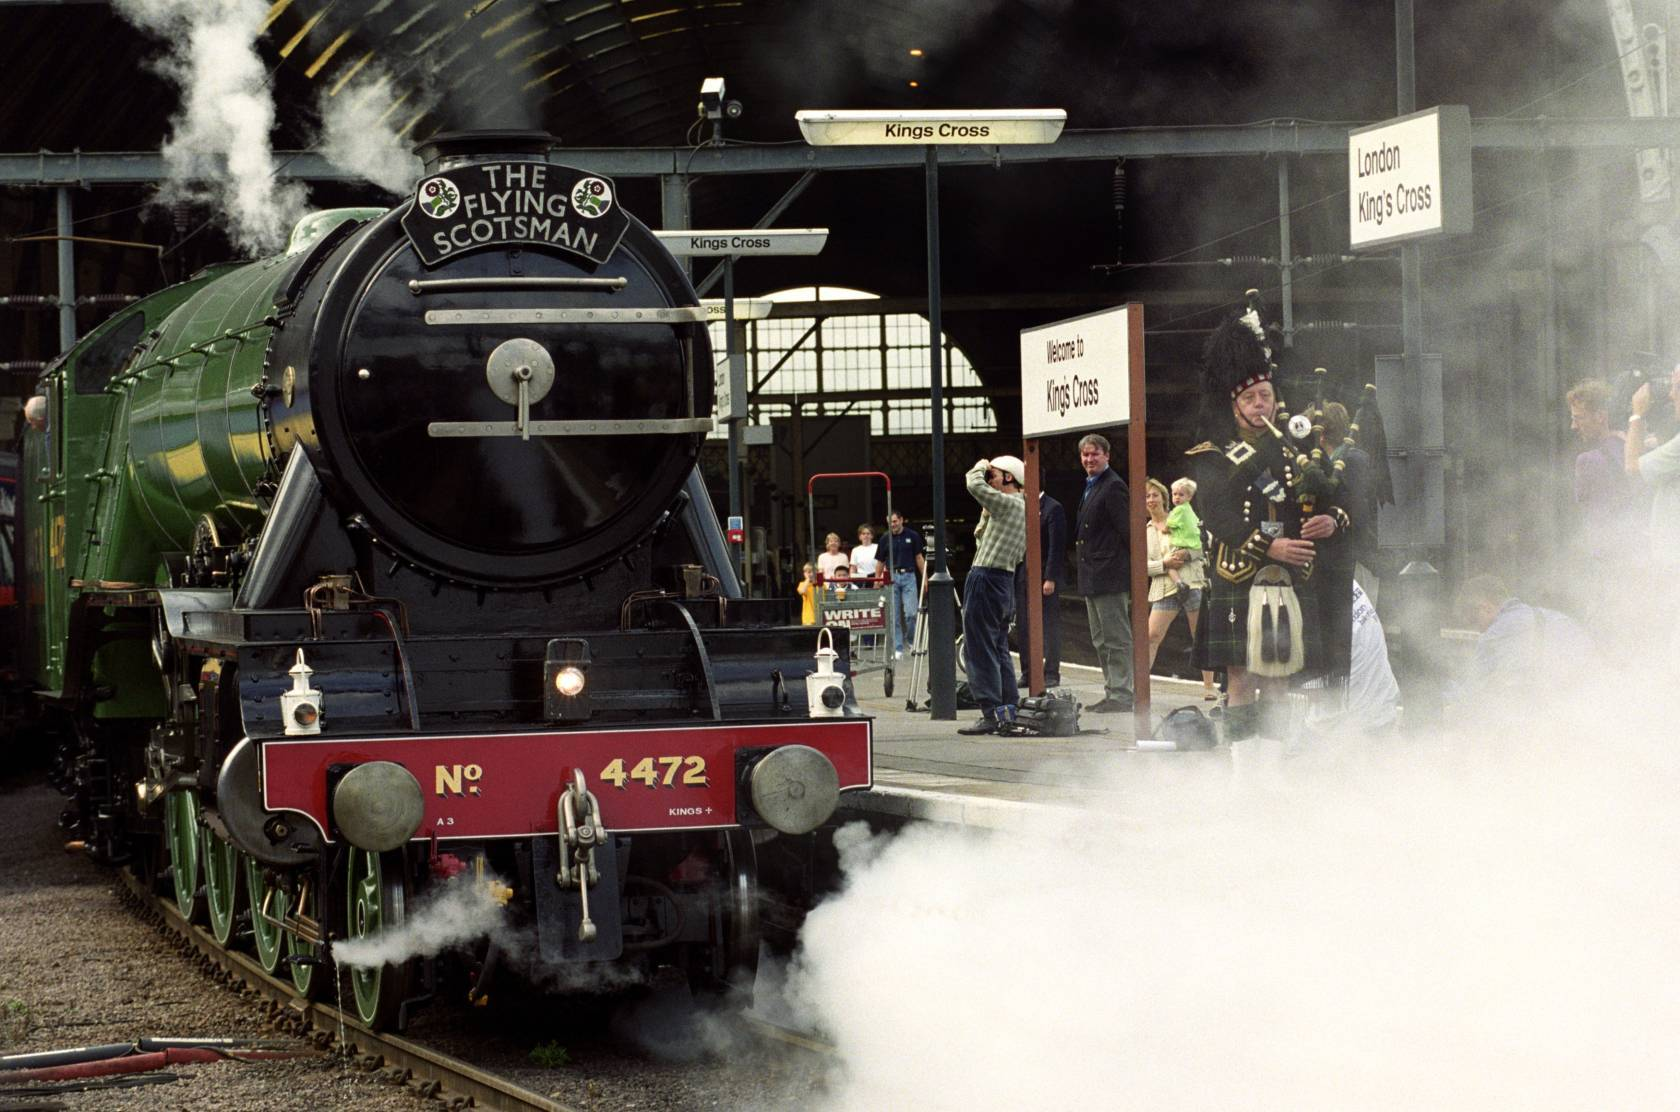 The Flying Scotsman, pictured in 1999 before its restoration.